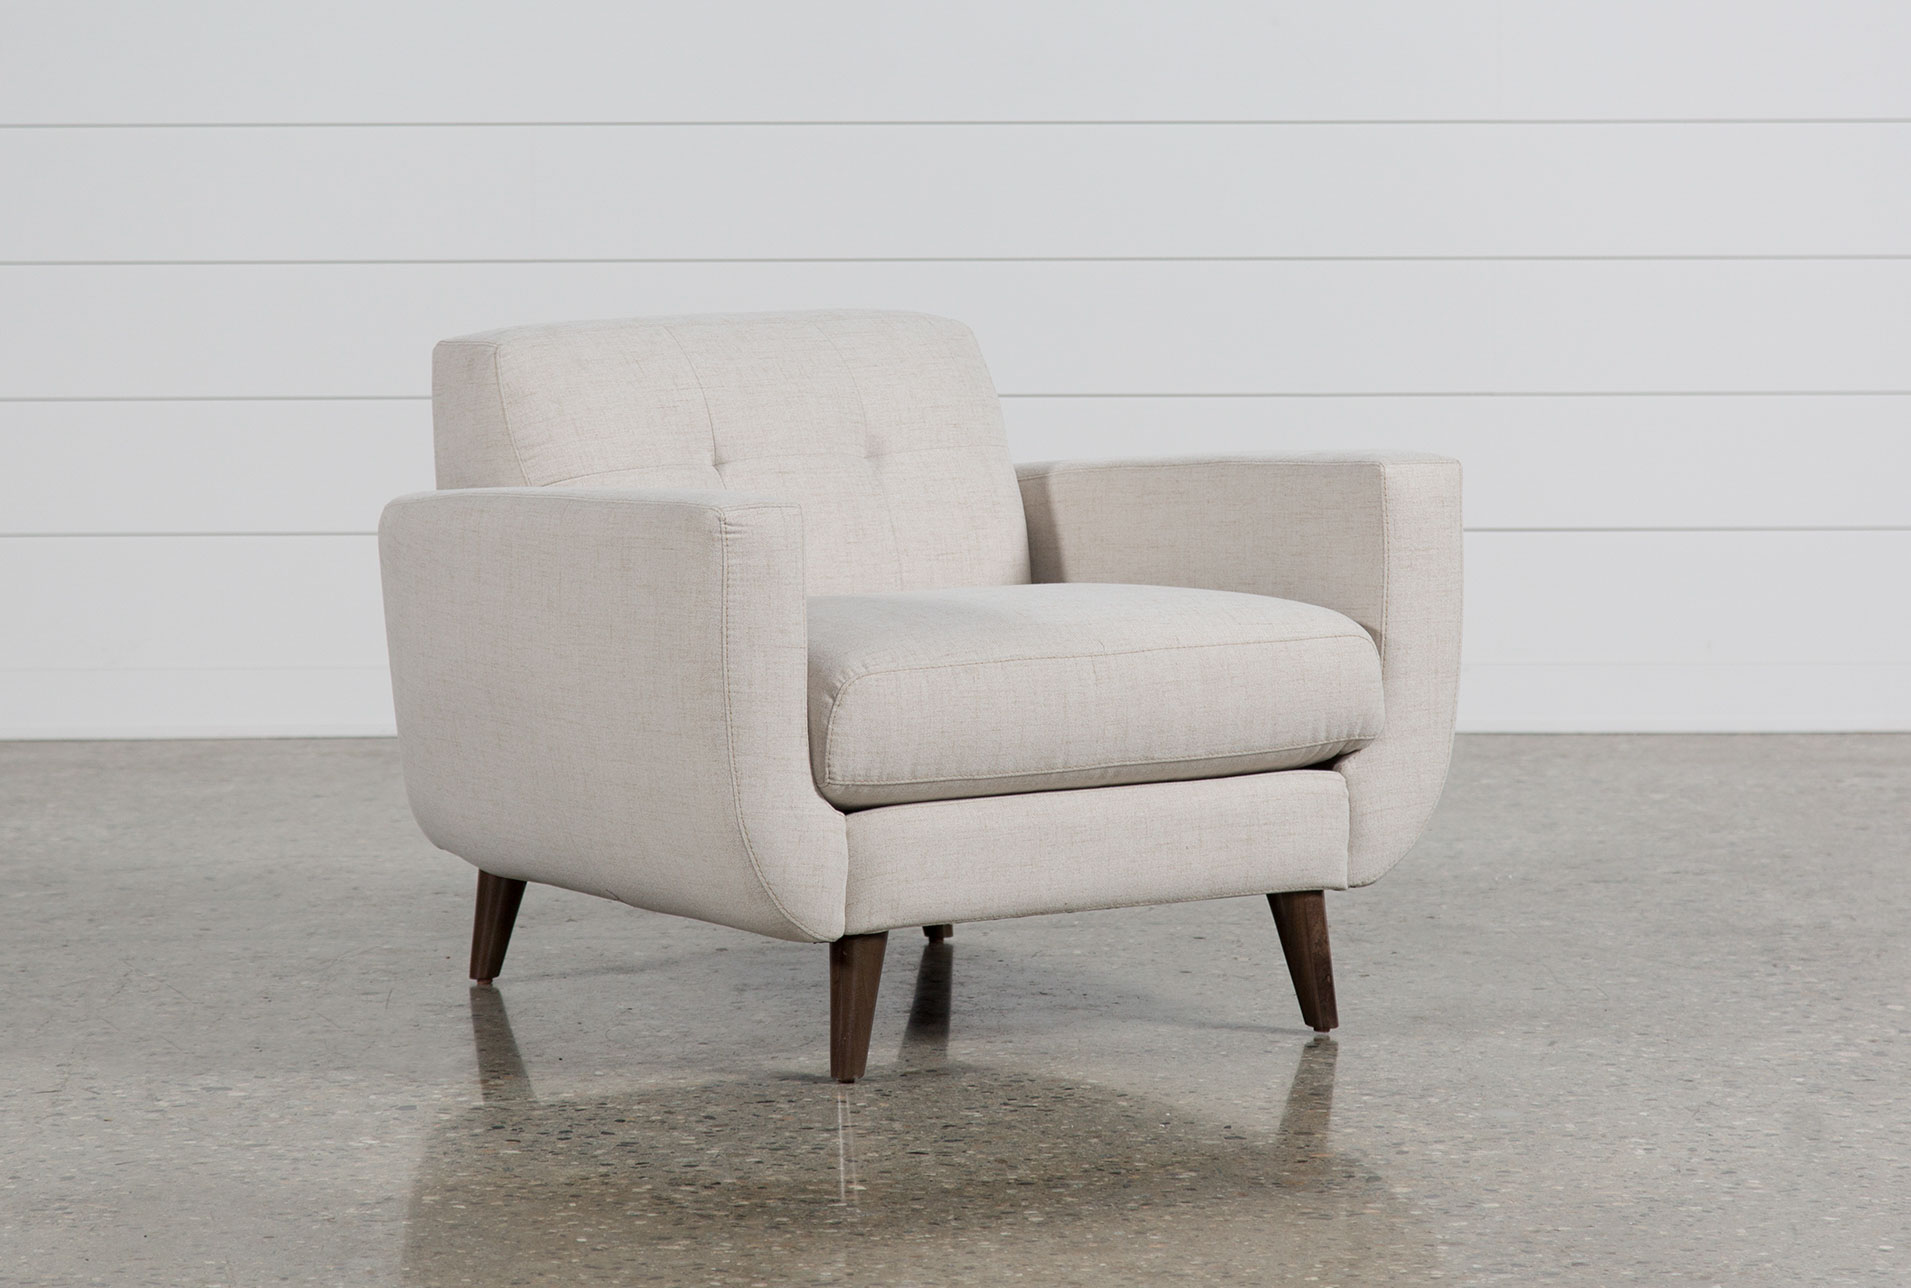 Bryce Arm Chair (Qty: 1) Has Been Successfully Added To Your Cart.